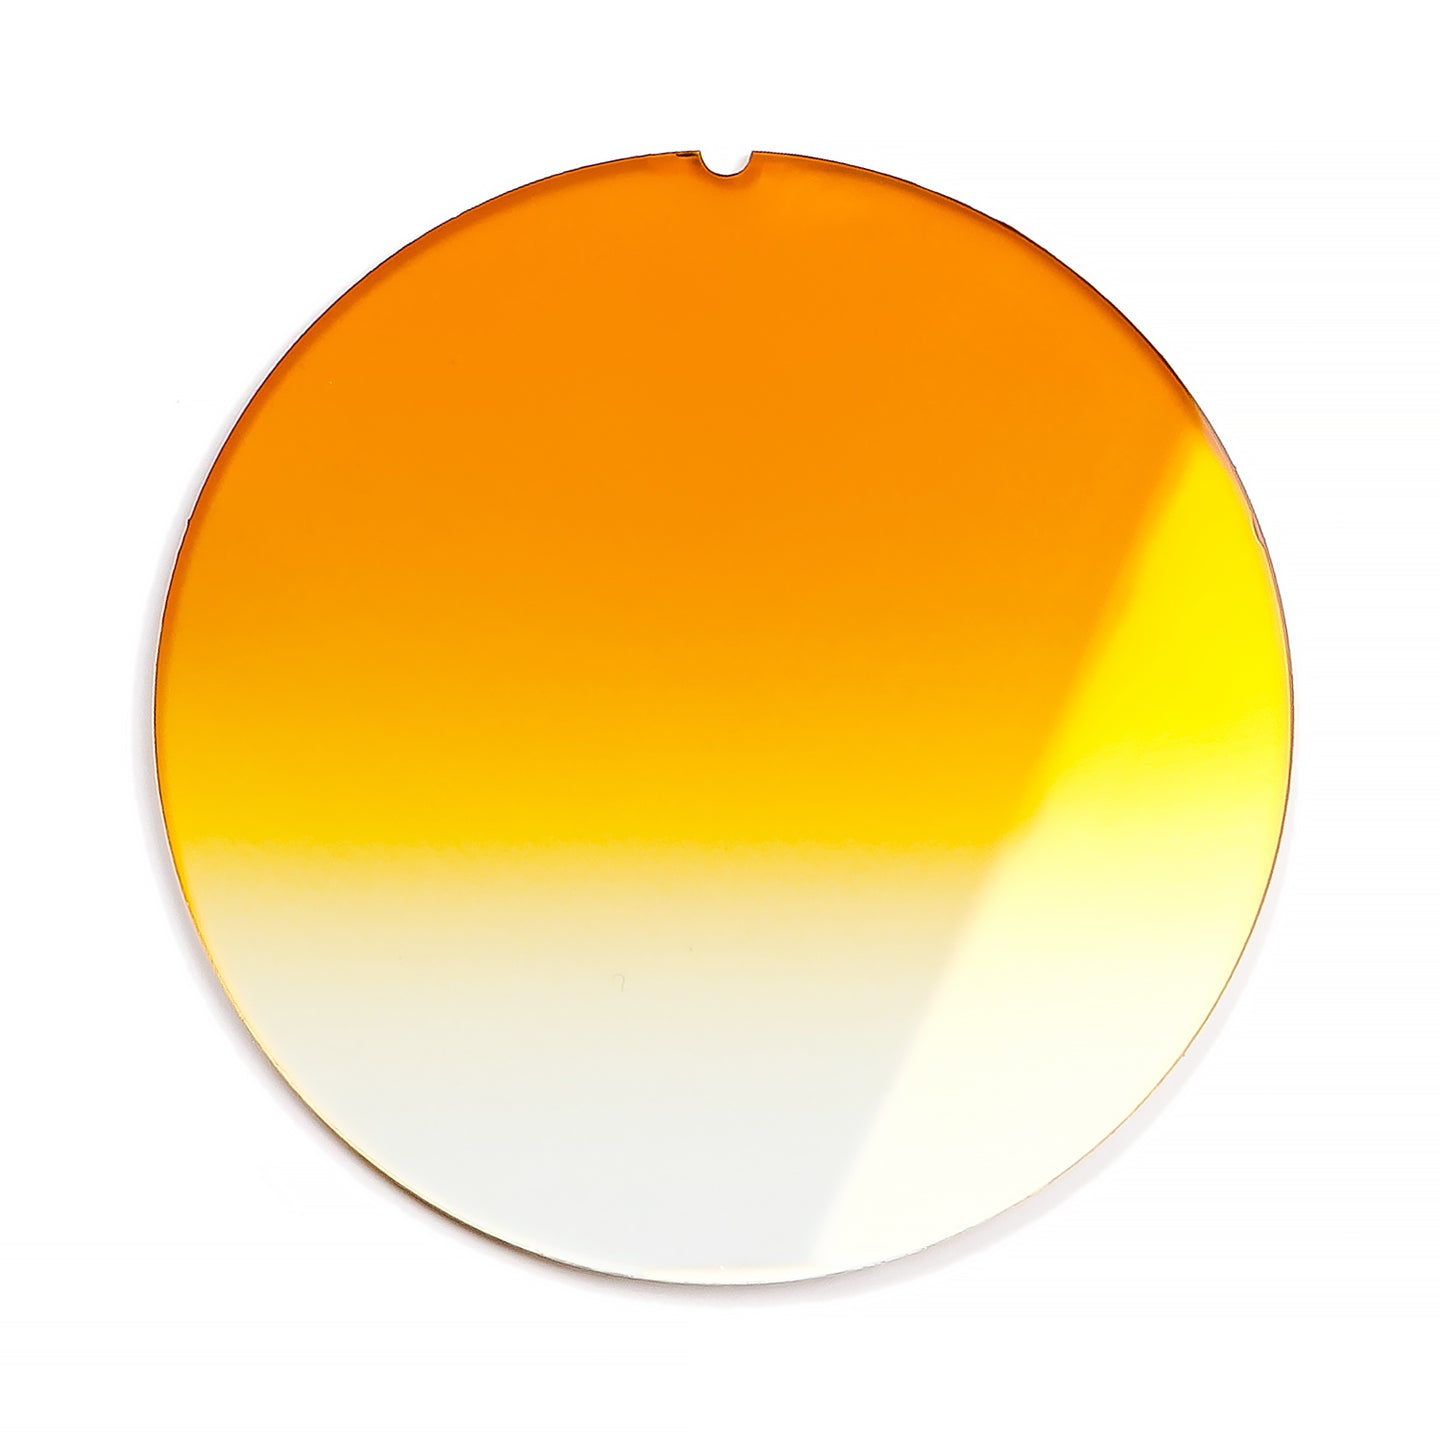 141 - Yellow Metro Gradient Flat Flash Gold Lens, lens, vintage lens, clear lens, lens frames, lens frame, circle lens, mens glasses, womens glasses, lens width, vintage frames company, vf